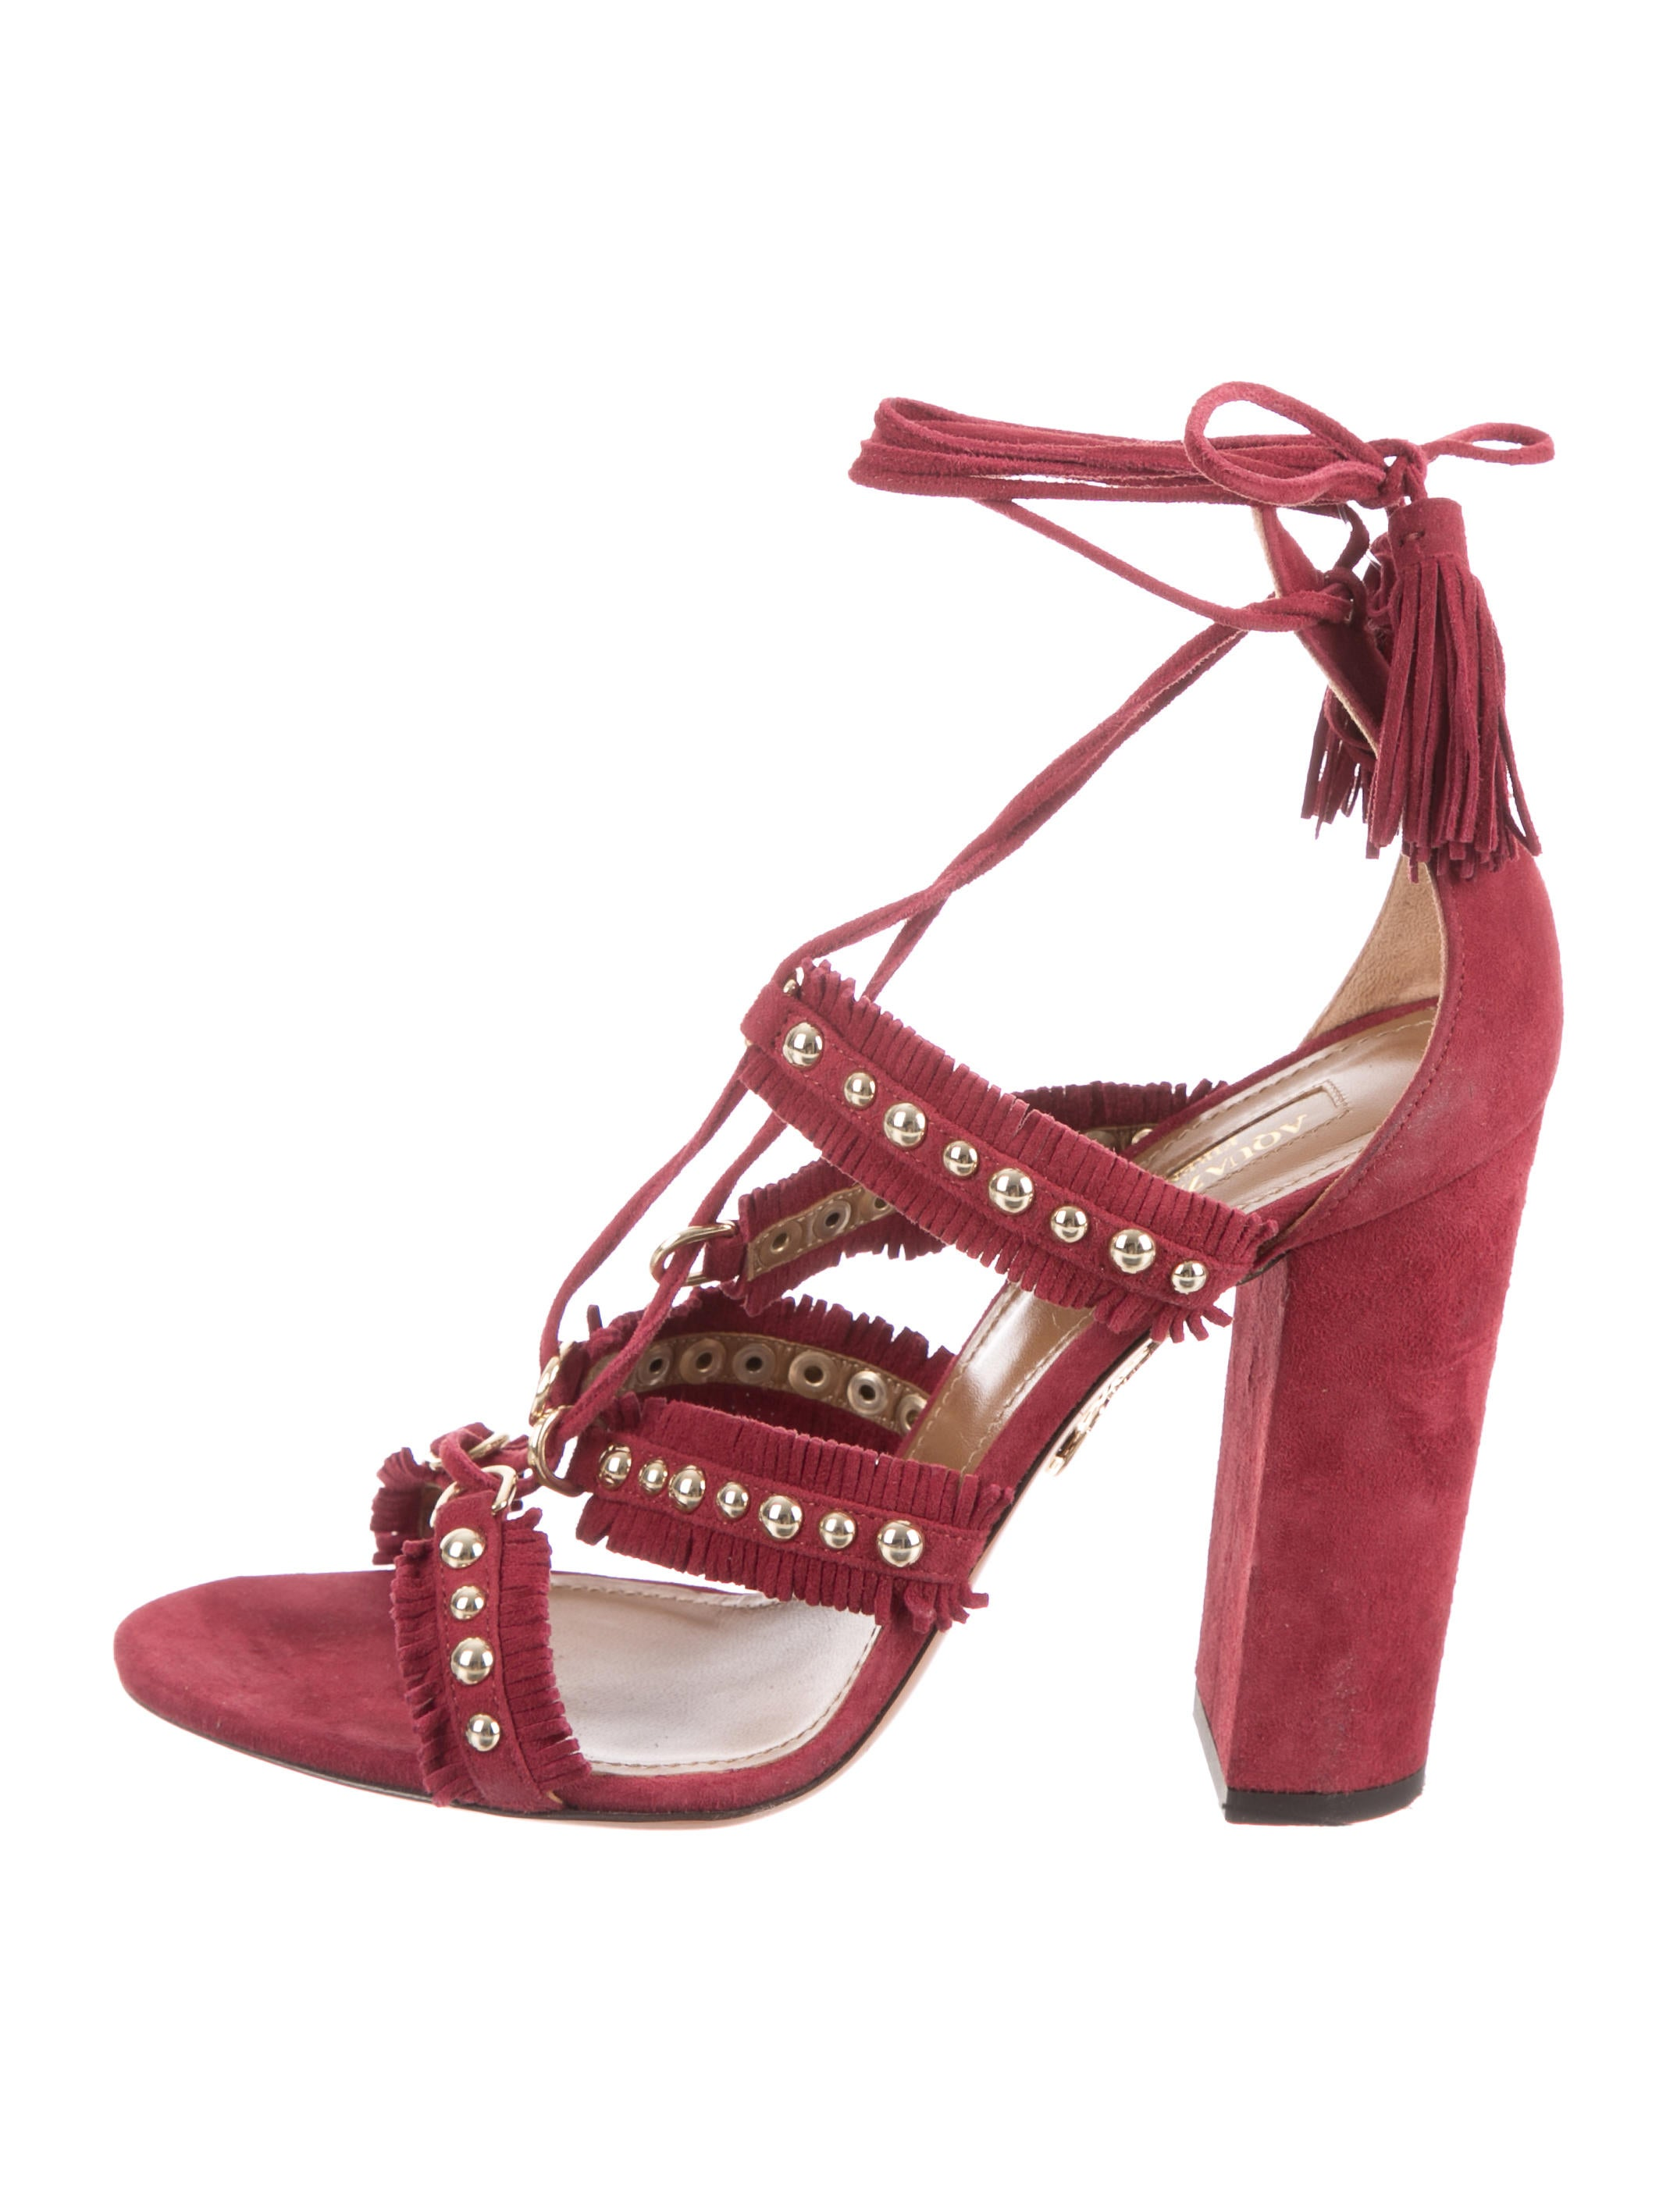 discount wide range of collections cheap online Aquazzura Firenza 105 Sandals cheap pick a best lowest price for sale clearance pre order DanN9kH